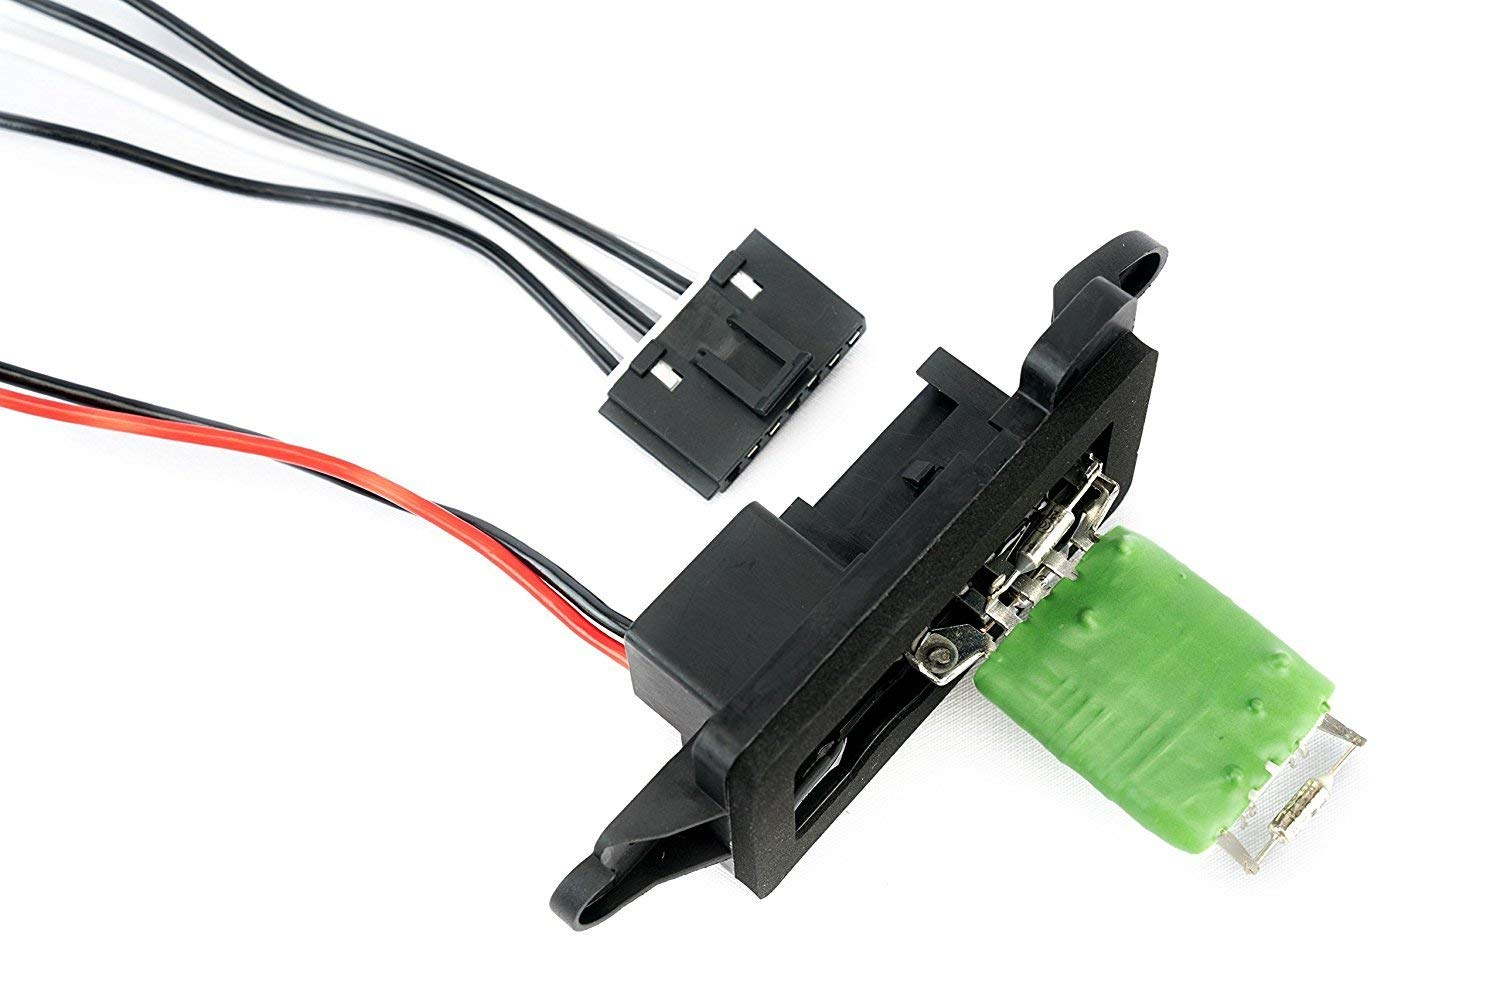 AC Blower Motor Resistor Kit With Harness 973-405 15-81086 22807123 Fits Chevy Silverado Replaces# 89019088